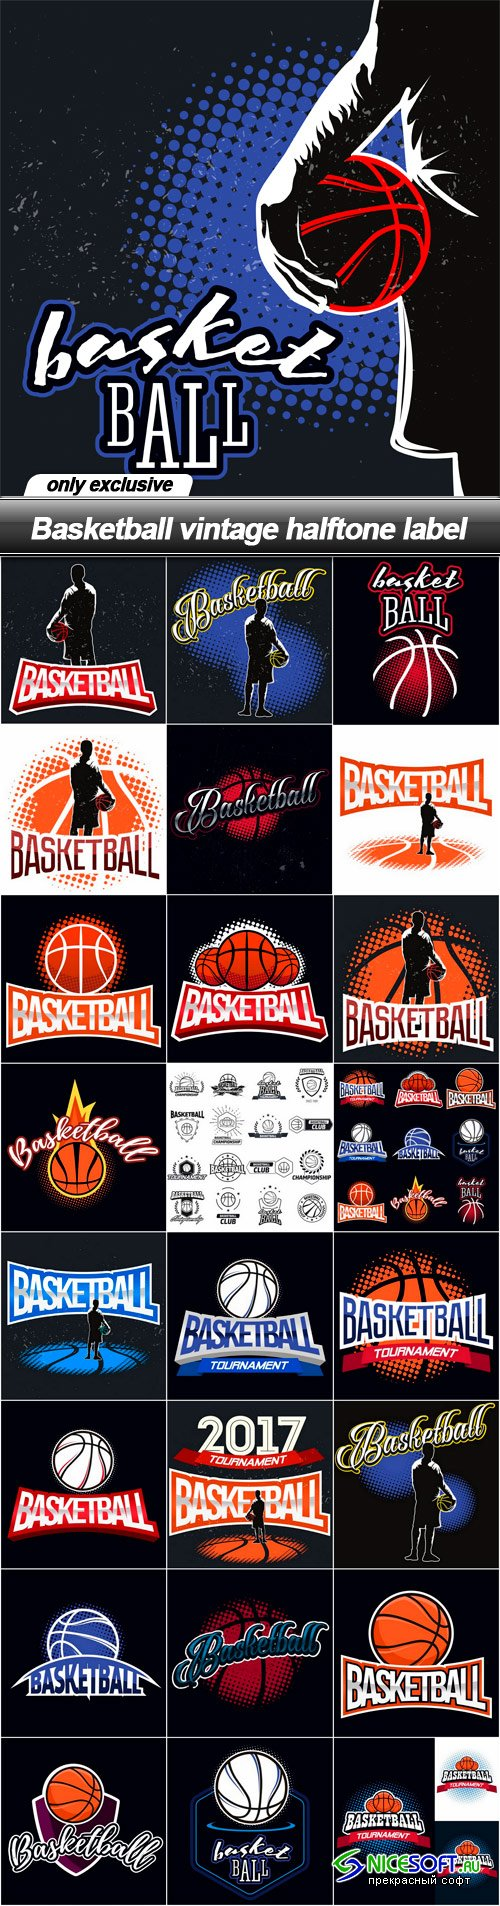 Basketball vintage halftone label